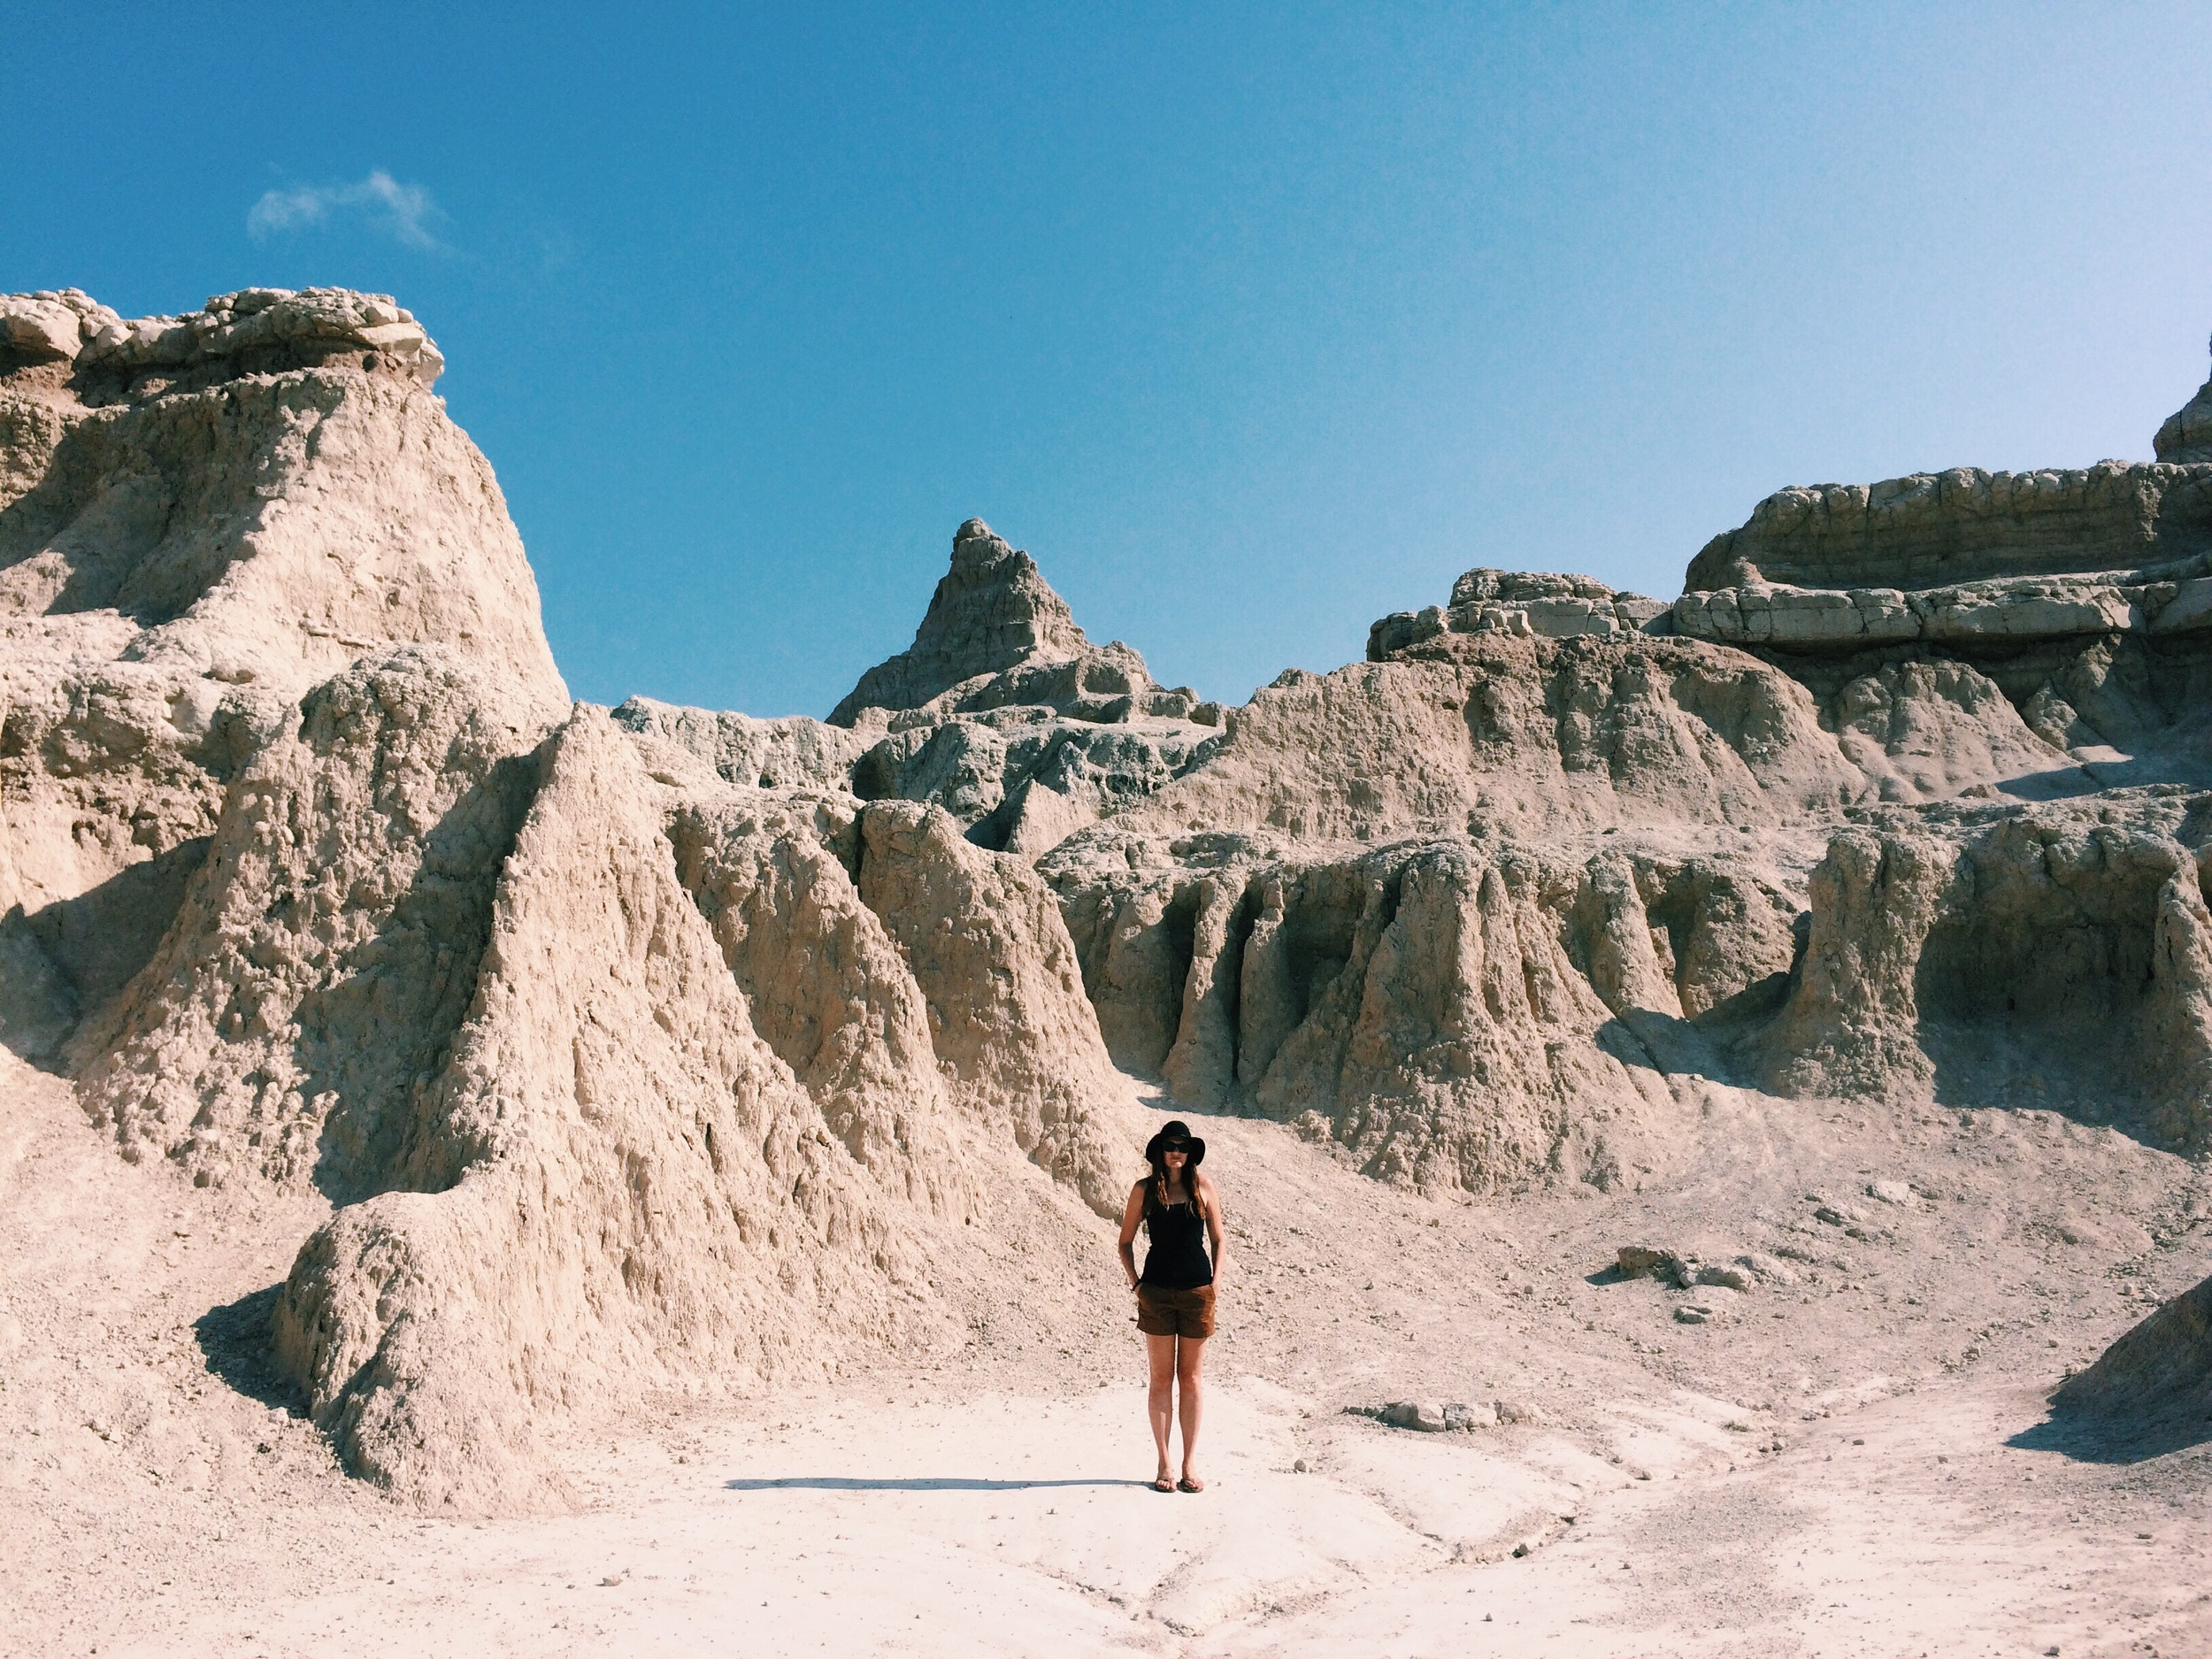 And a quick stop in the Badlands